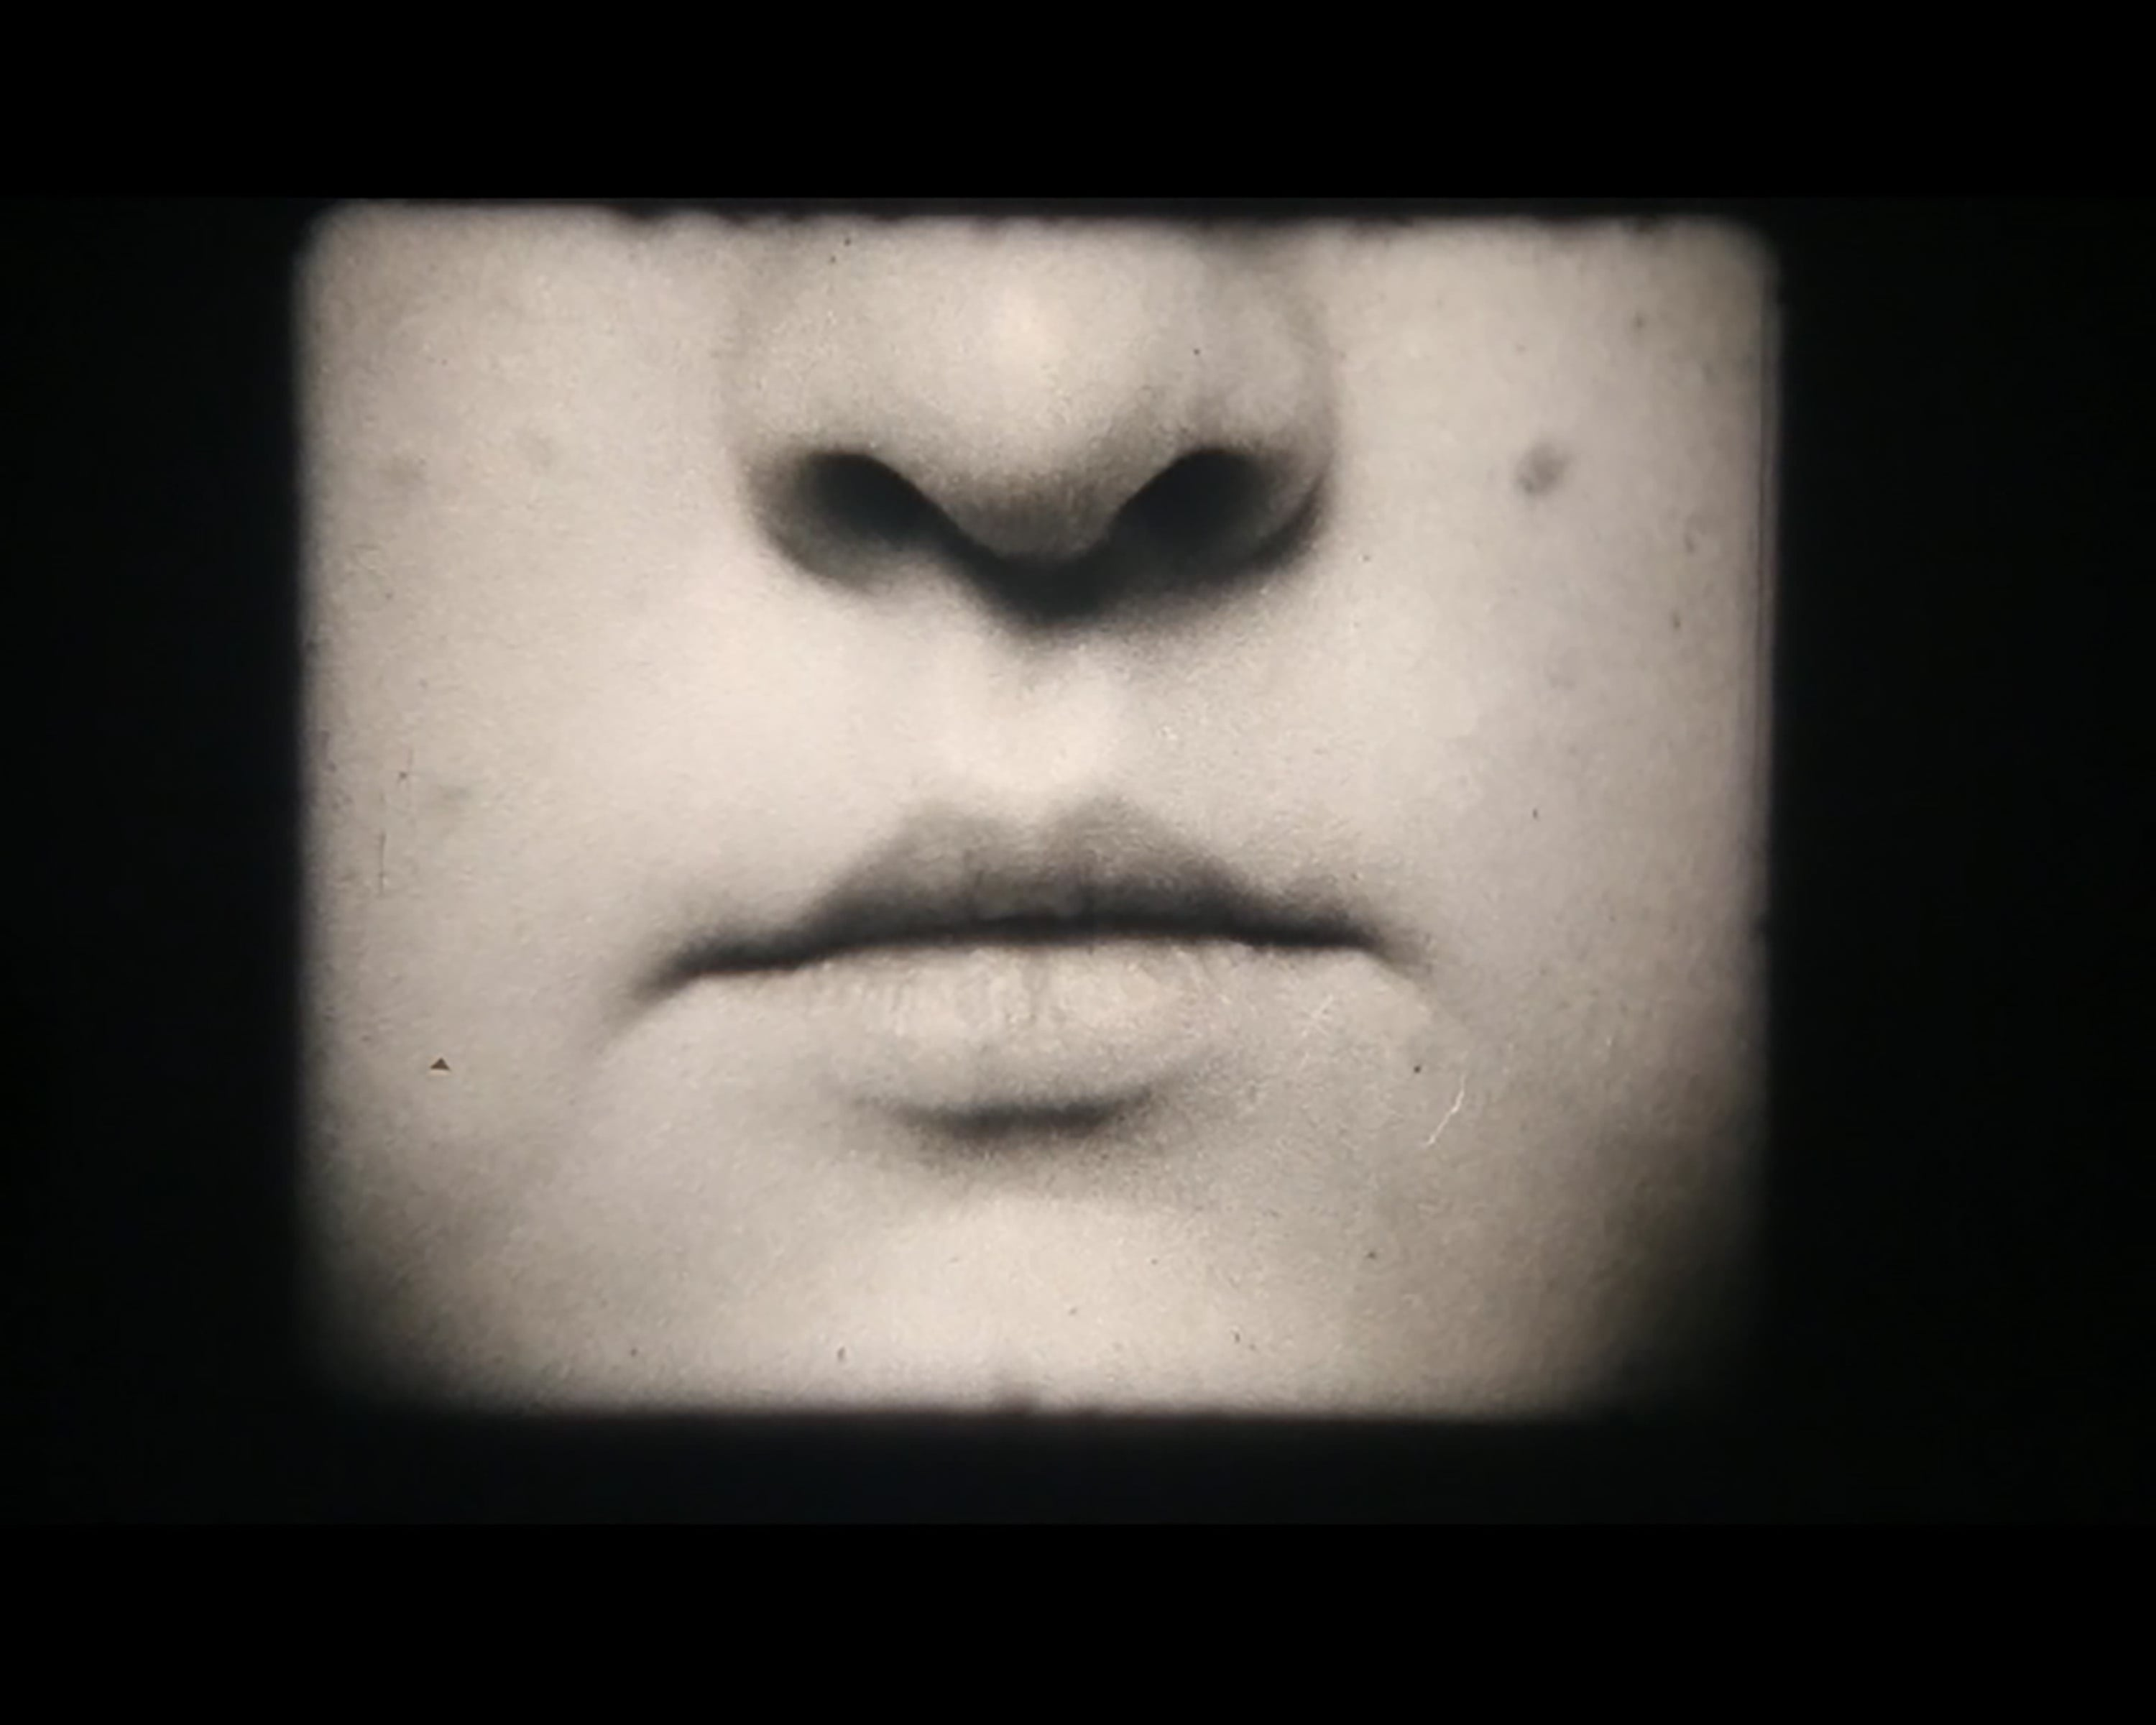 Black and white photo of a close up of someones nose and lips